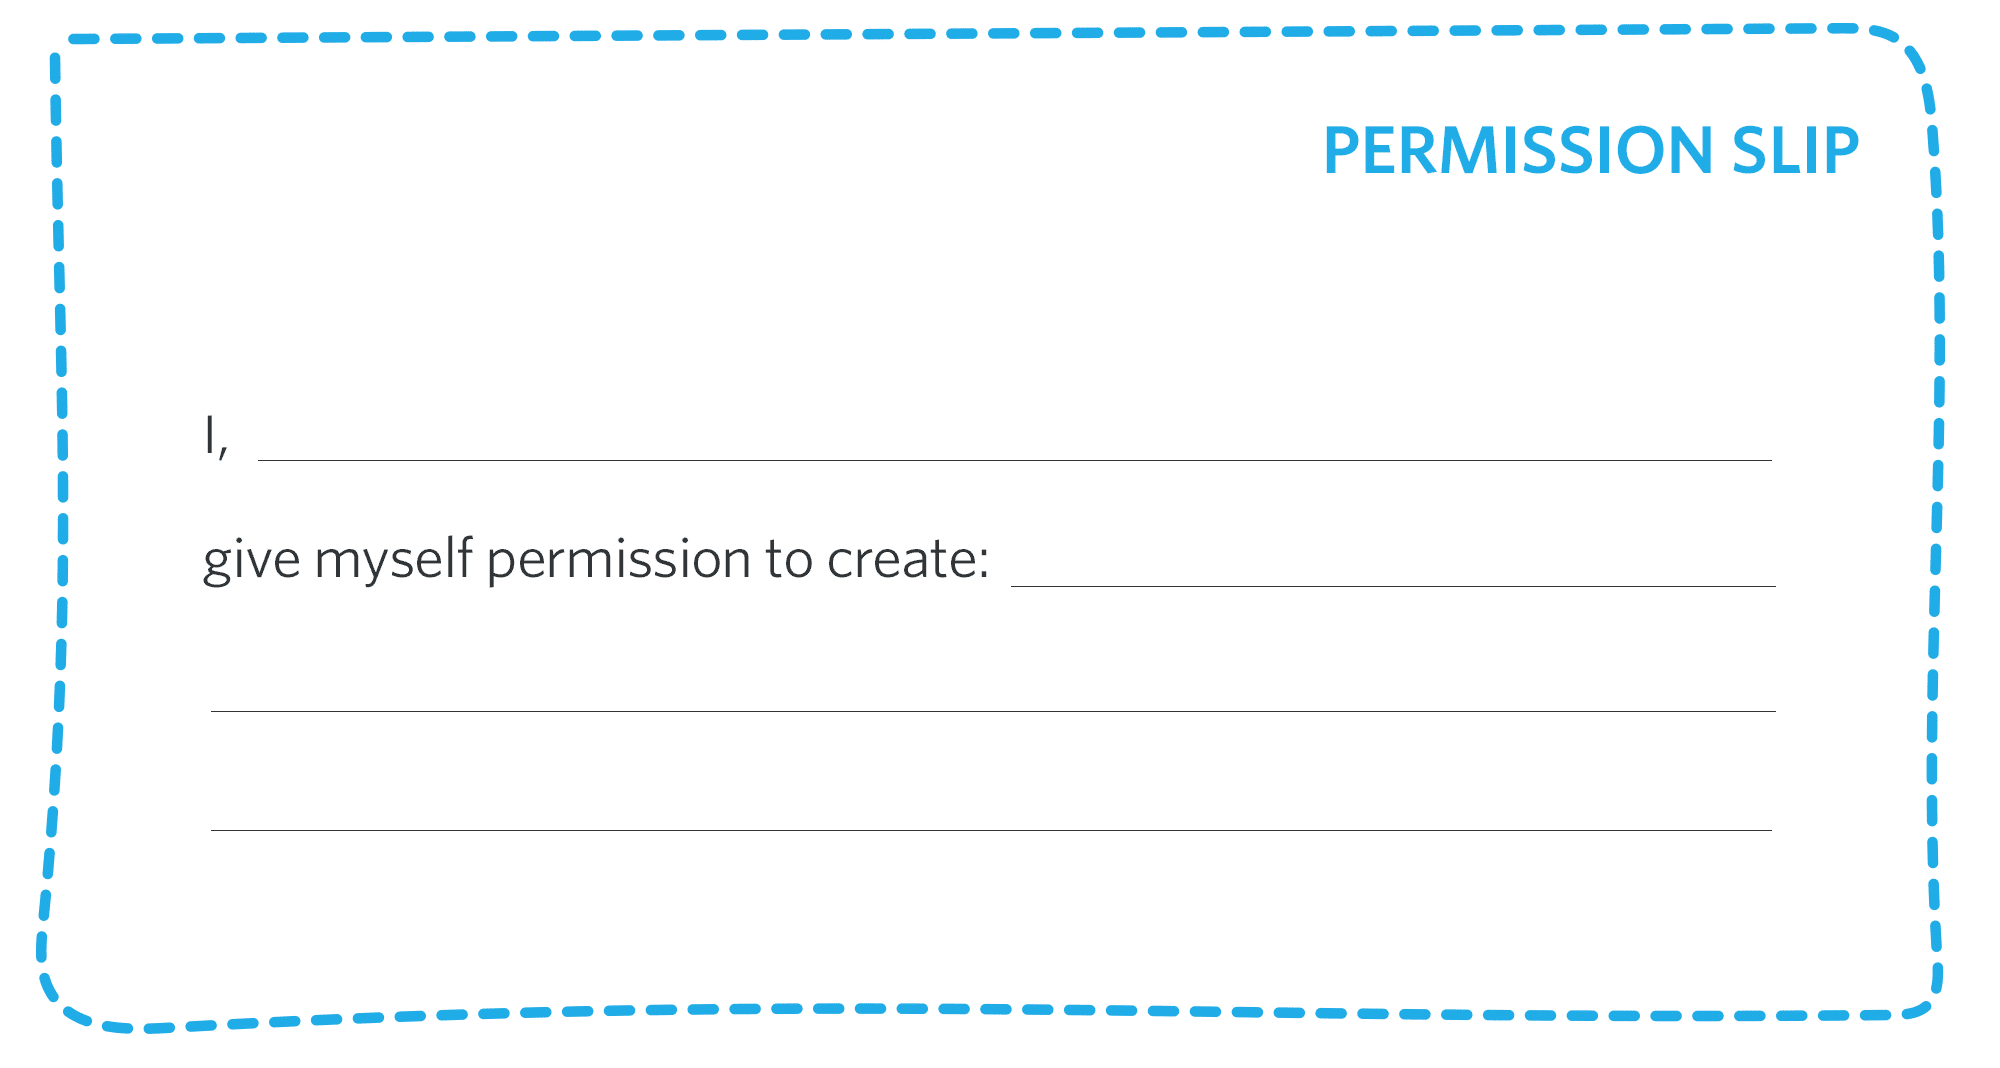 Your permission slip (you don't need one)